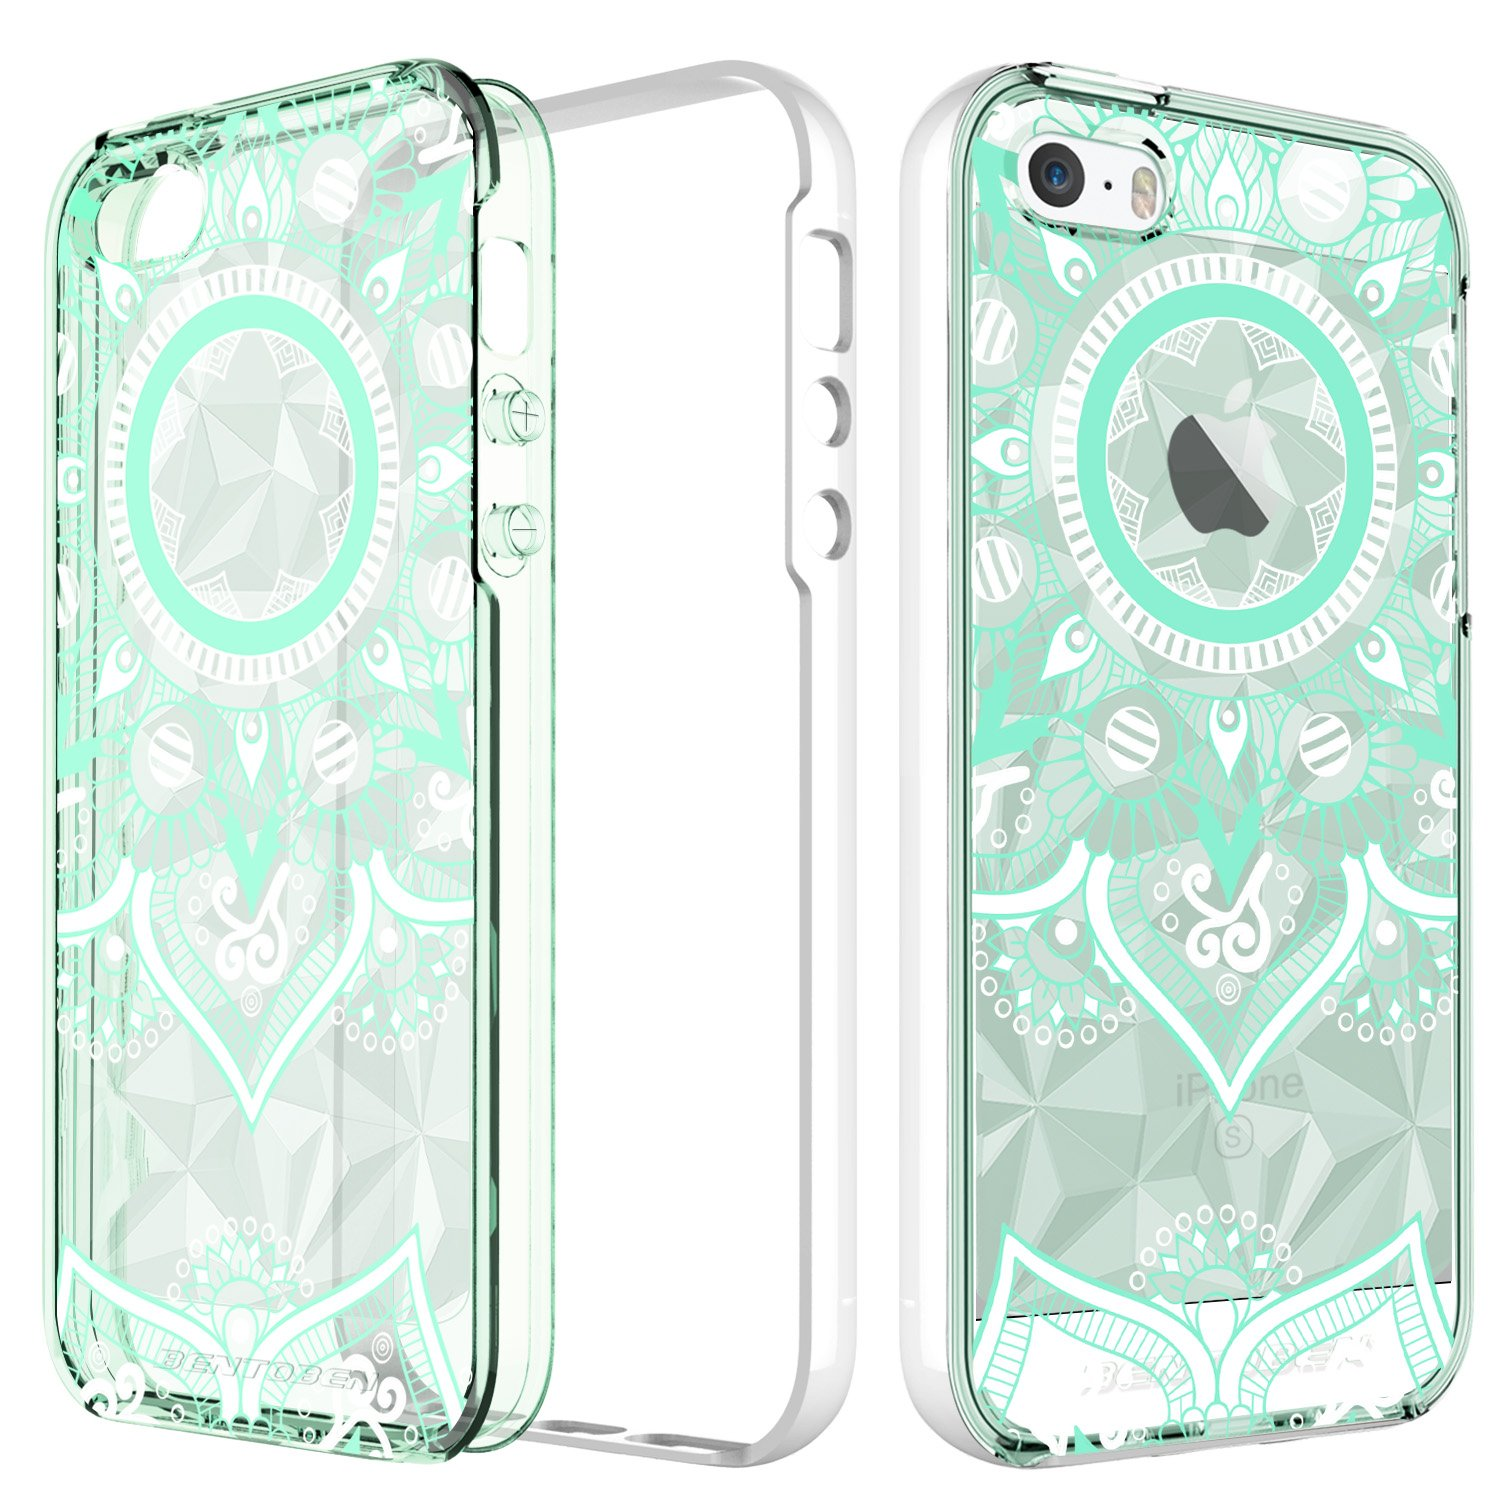 newest dd5fe 5ca7c BENTOBEN Phone Case for Apple iPhone SE iPhone 5S iPhone 5, Slim Clear  Pretty Mandala Cell Phone Cases, Shockproof Protective Hybrid 2 in 1 Soft  TPU ...